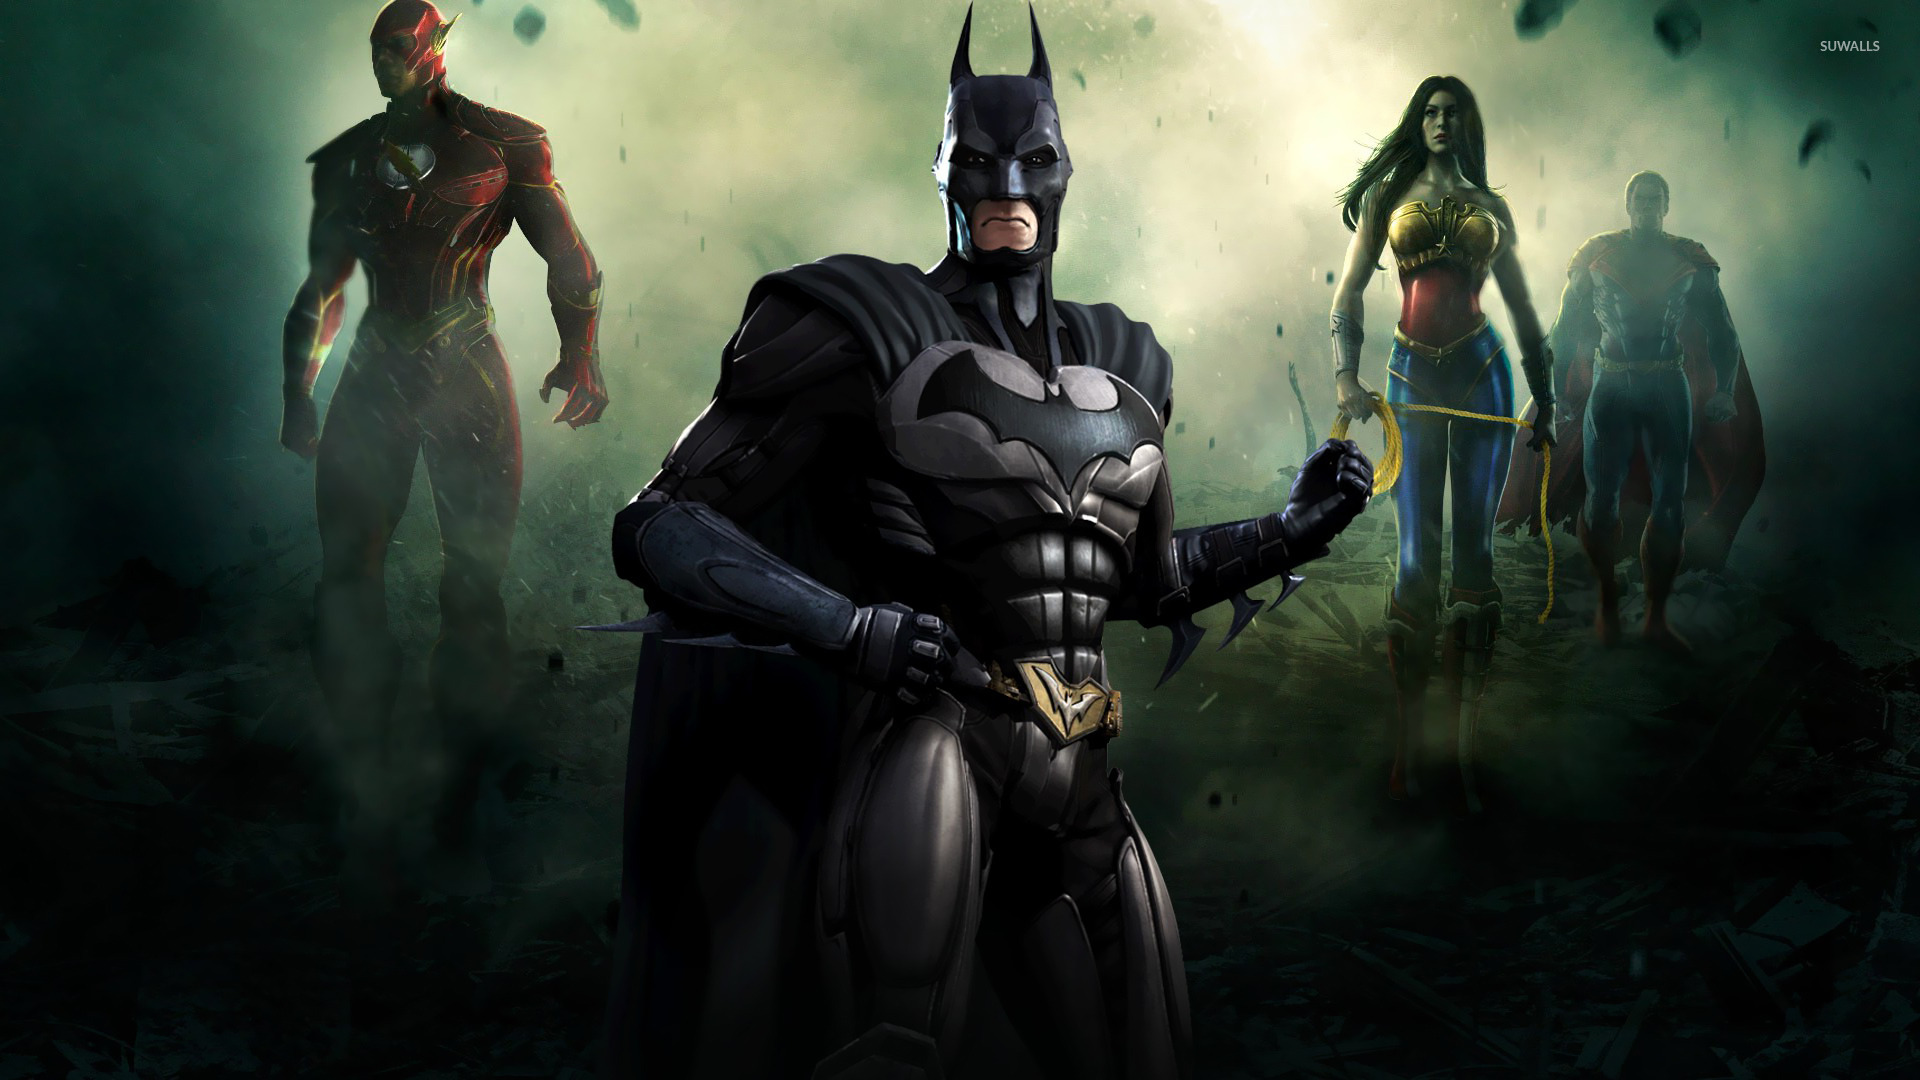 Batman   Injustice Gods Among Us wallpaper   Game wallpapers   18815 1920x1080